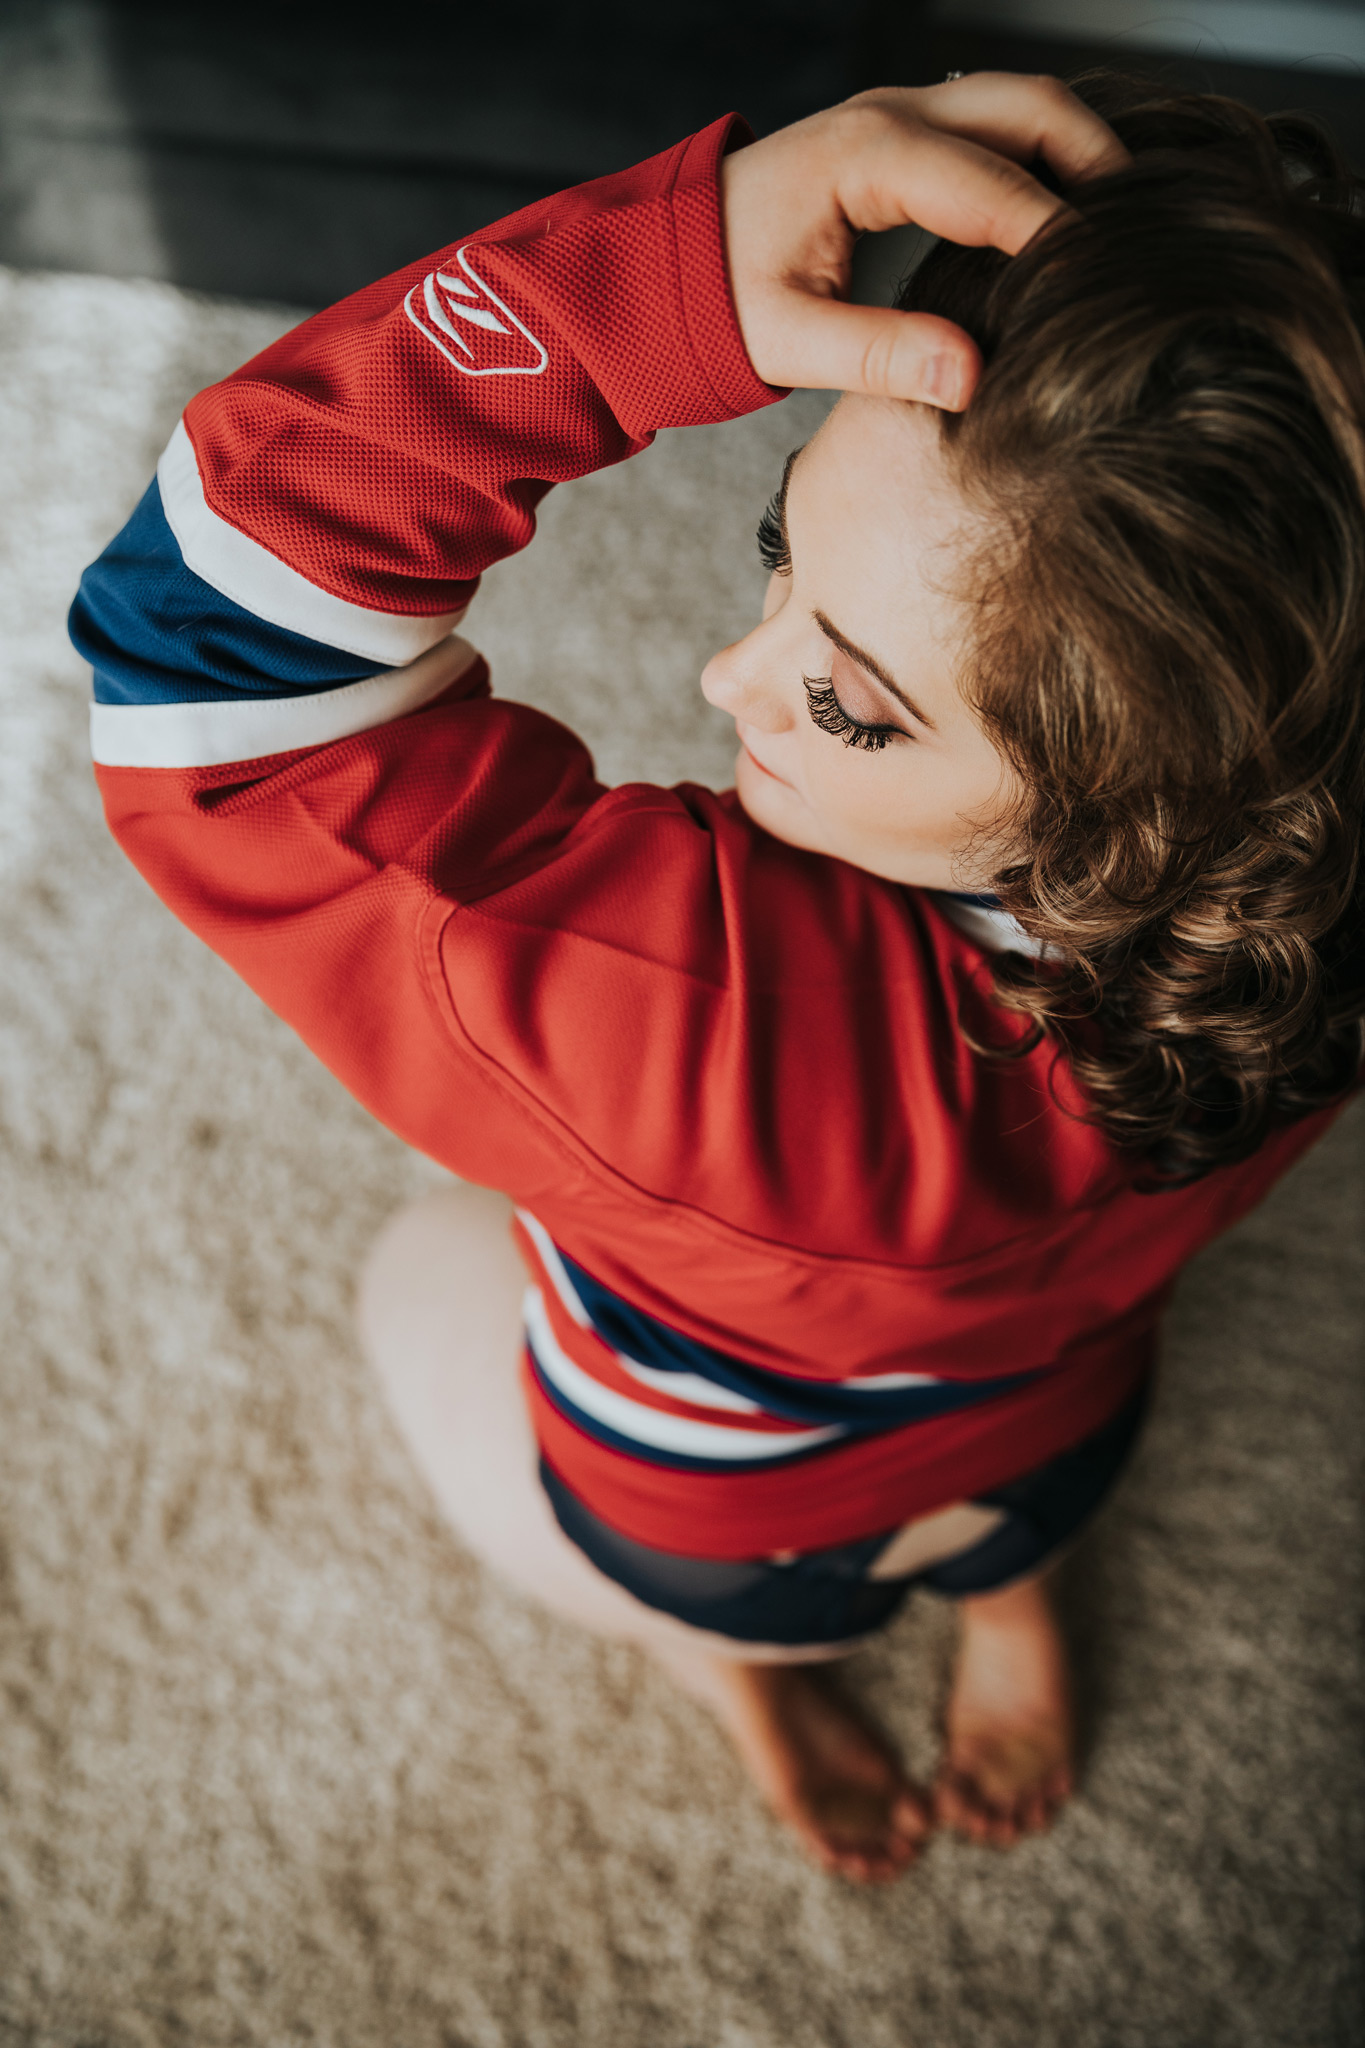 woman sitting on floor wearing hockey jersey bridal boudoir